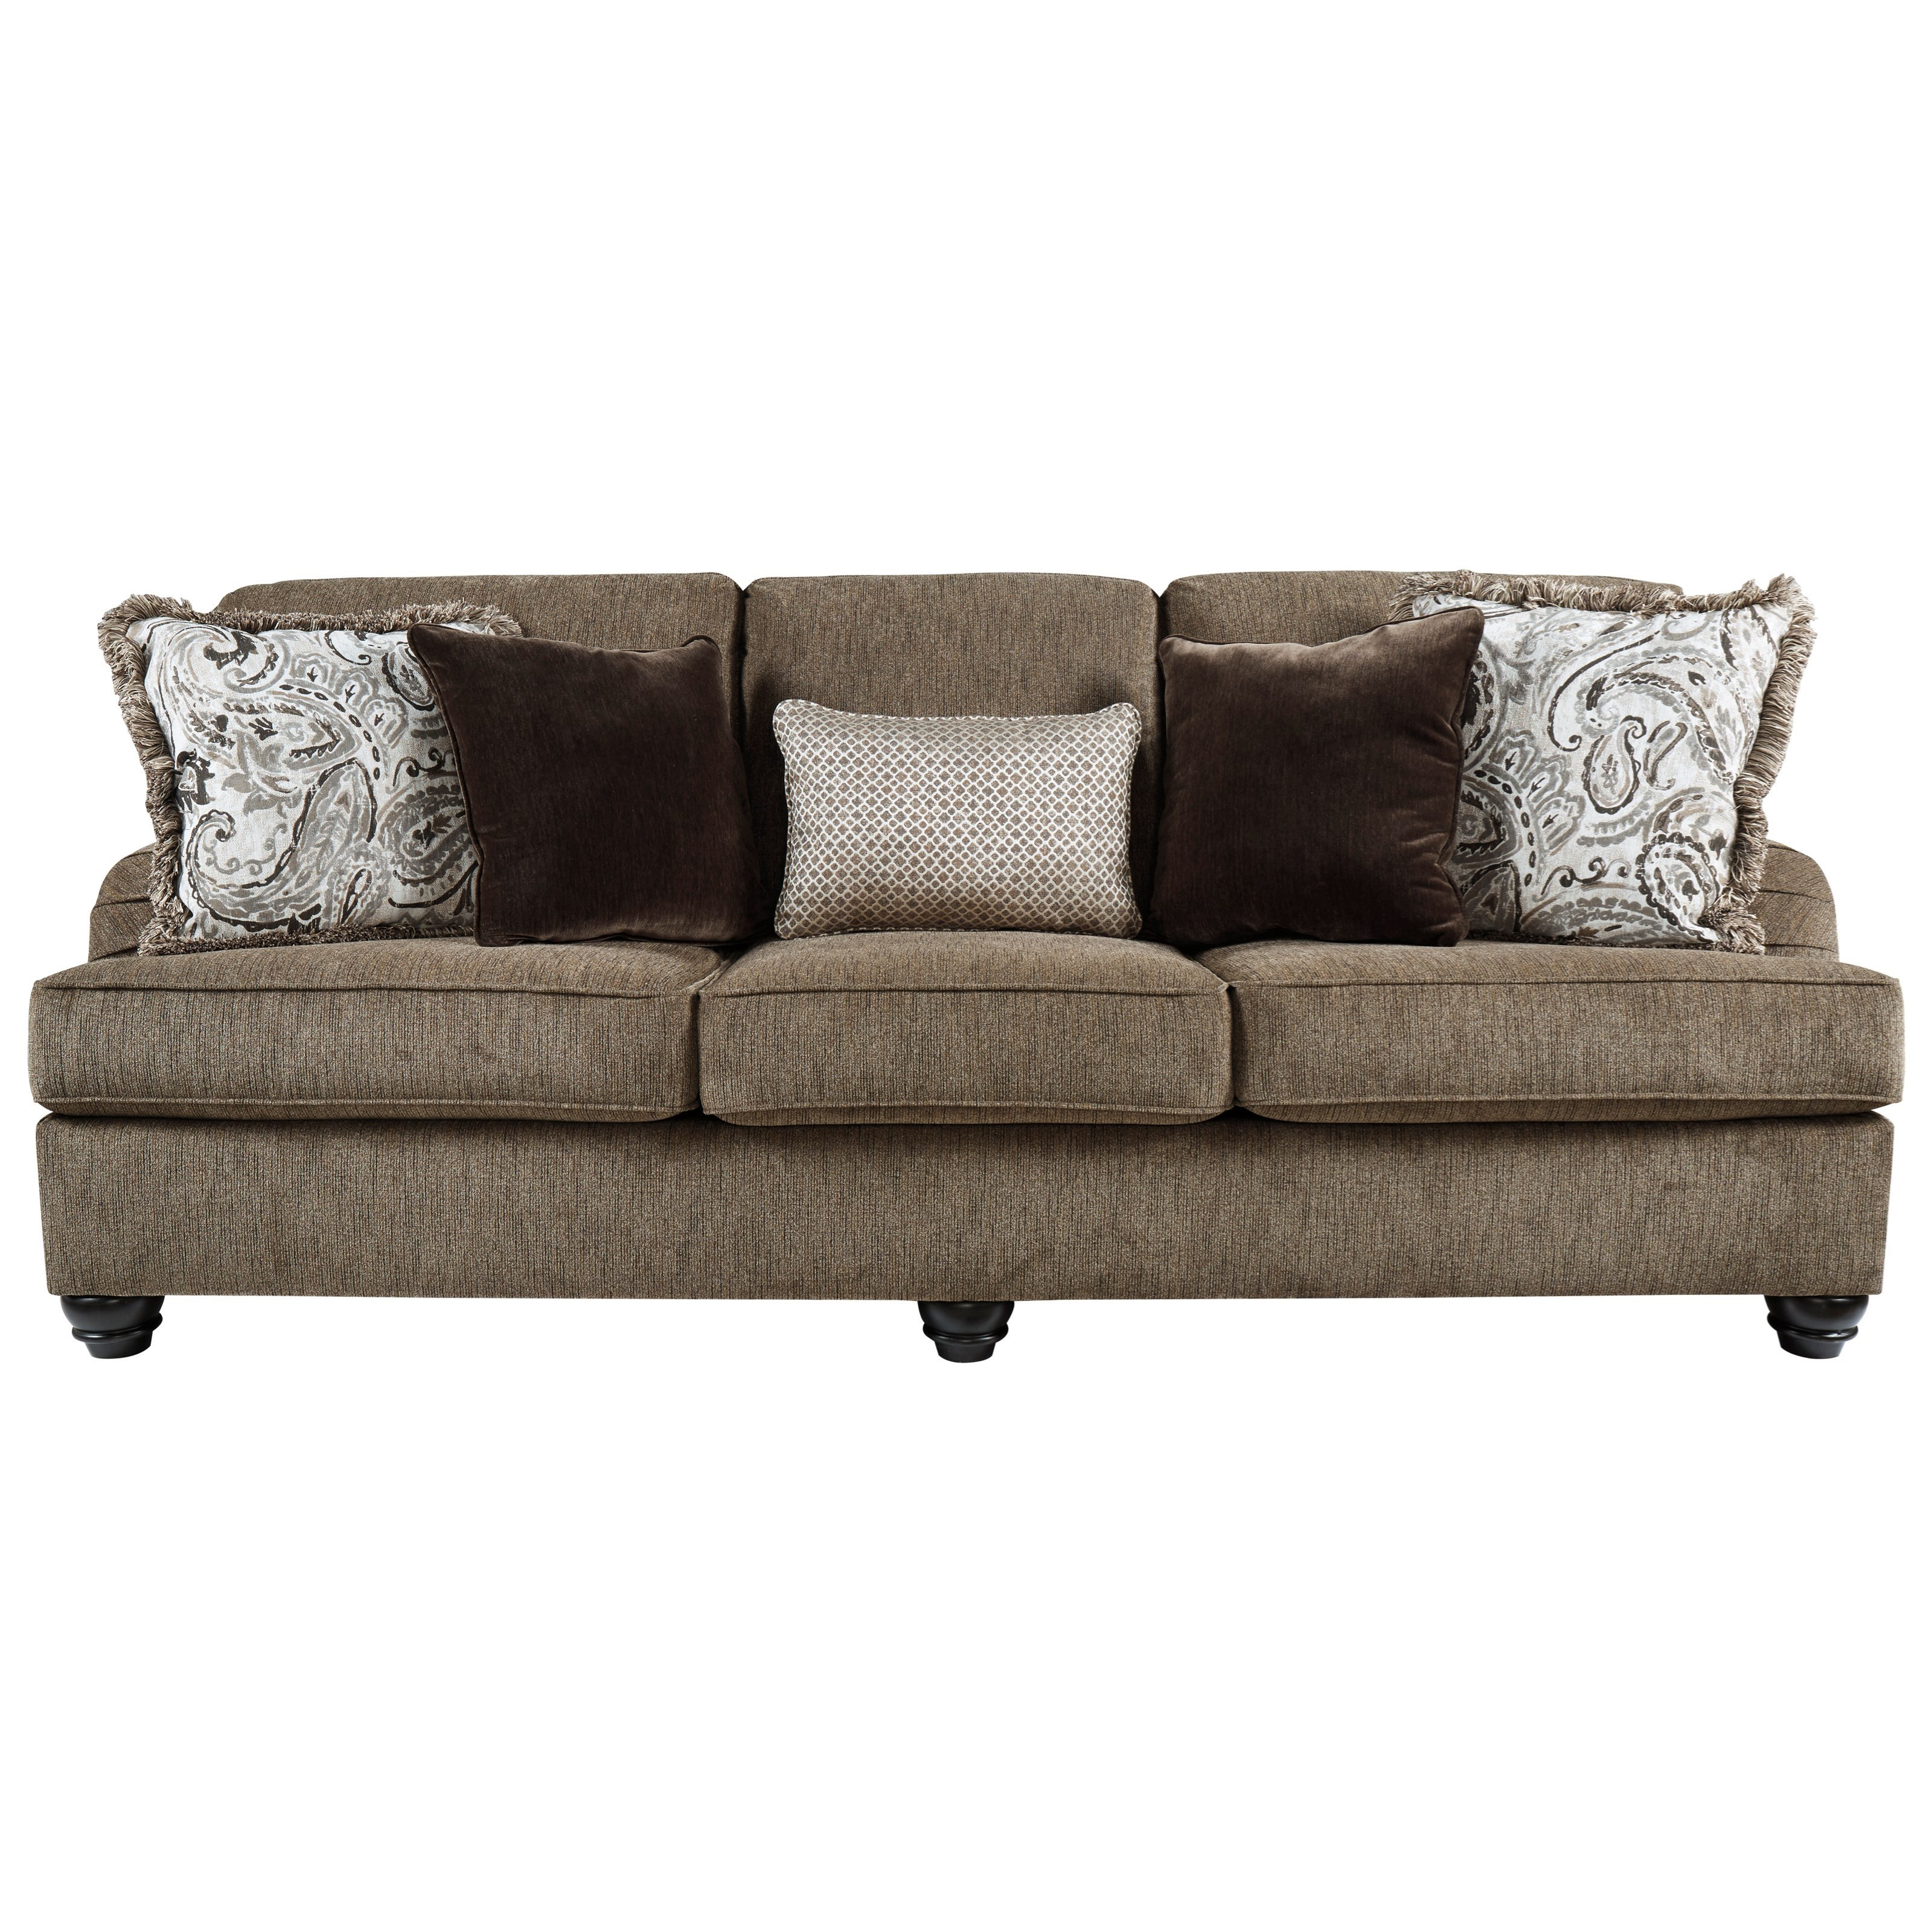 Braemar Sofa by Benchcraft at Beck's Furniture